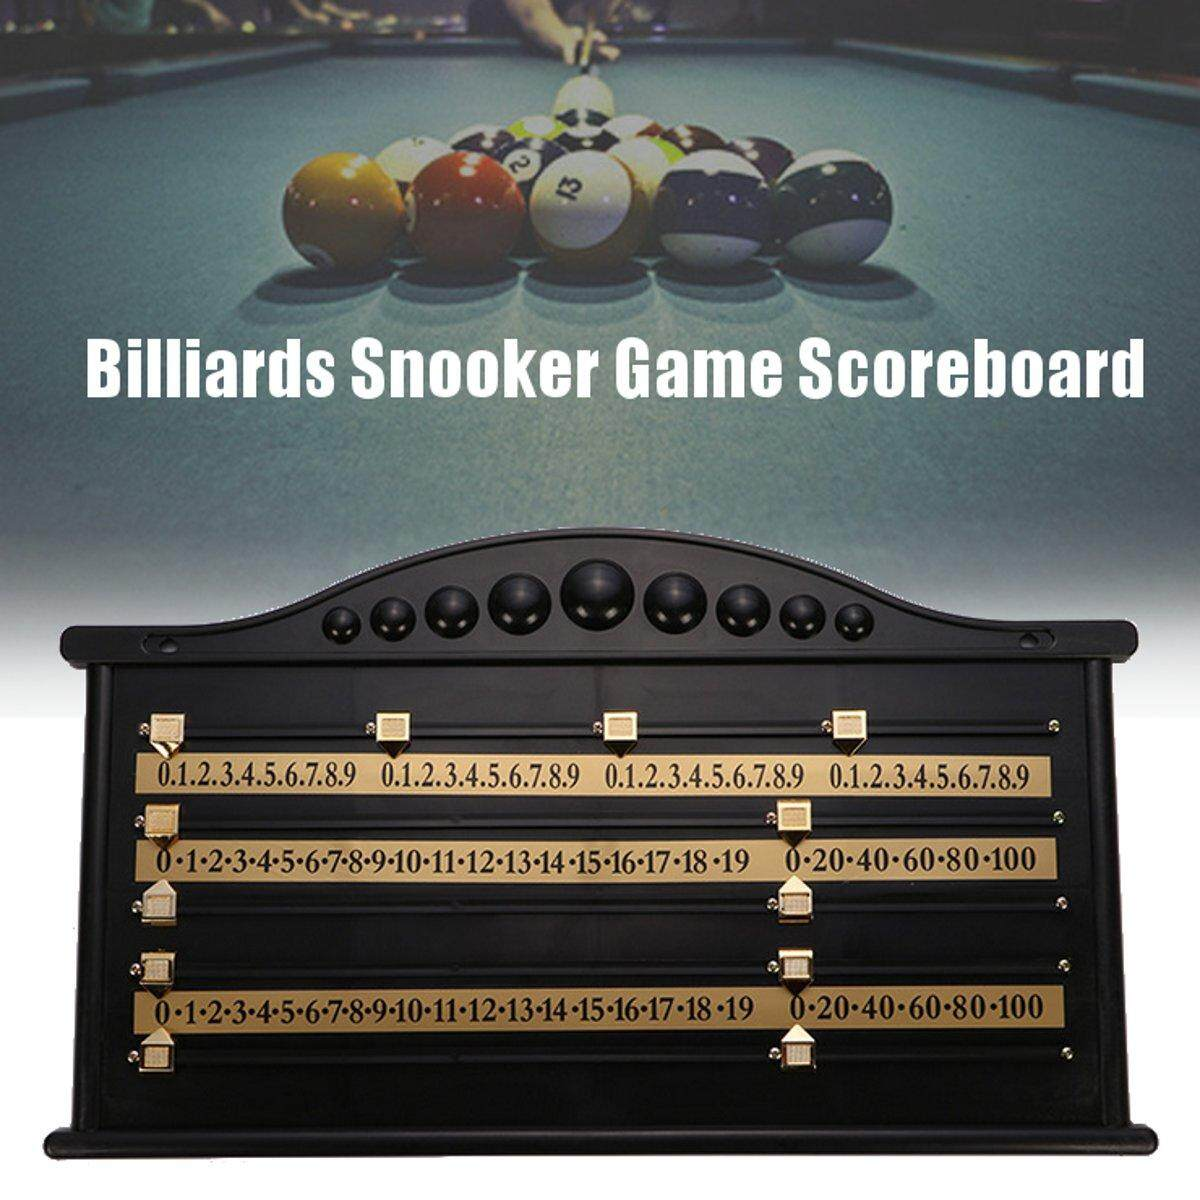 Plastic Billiards Scoreboard Snooker Game Scorer Board Player Calculation Number